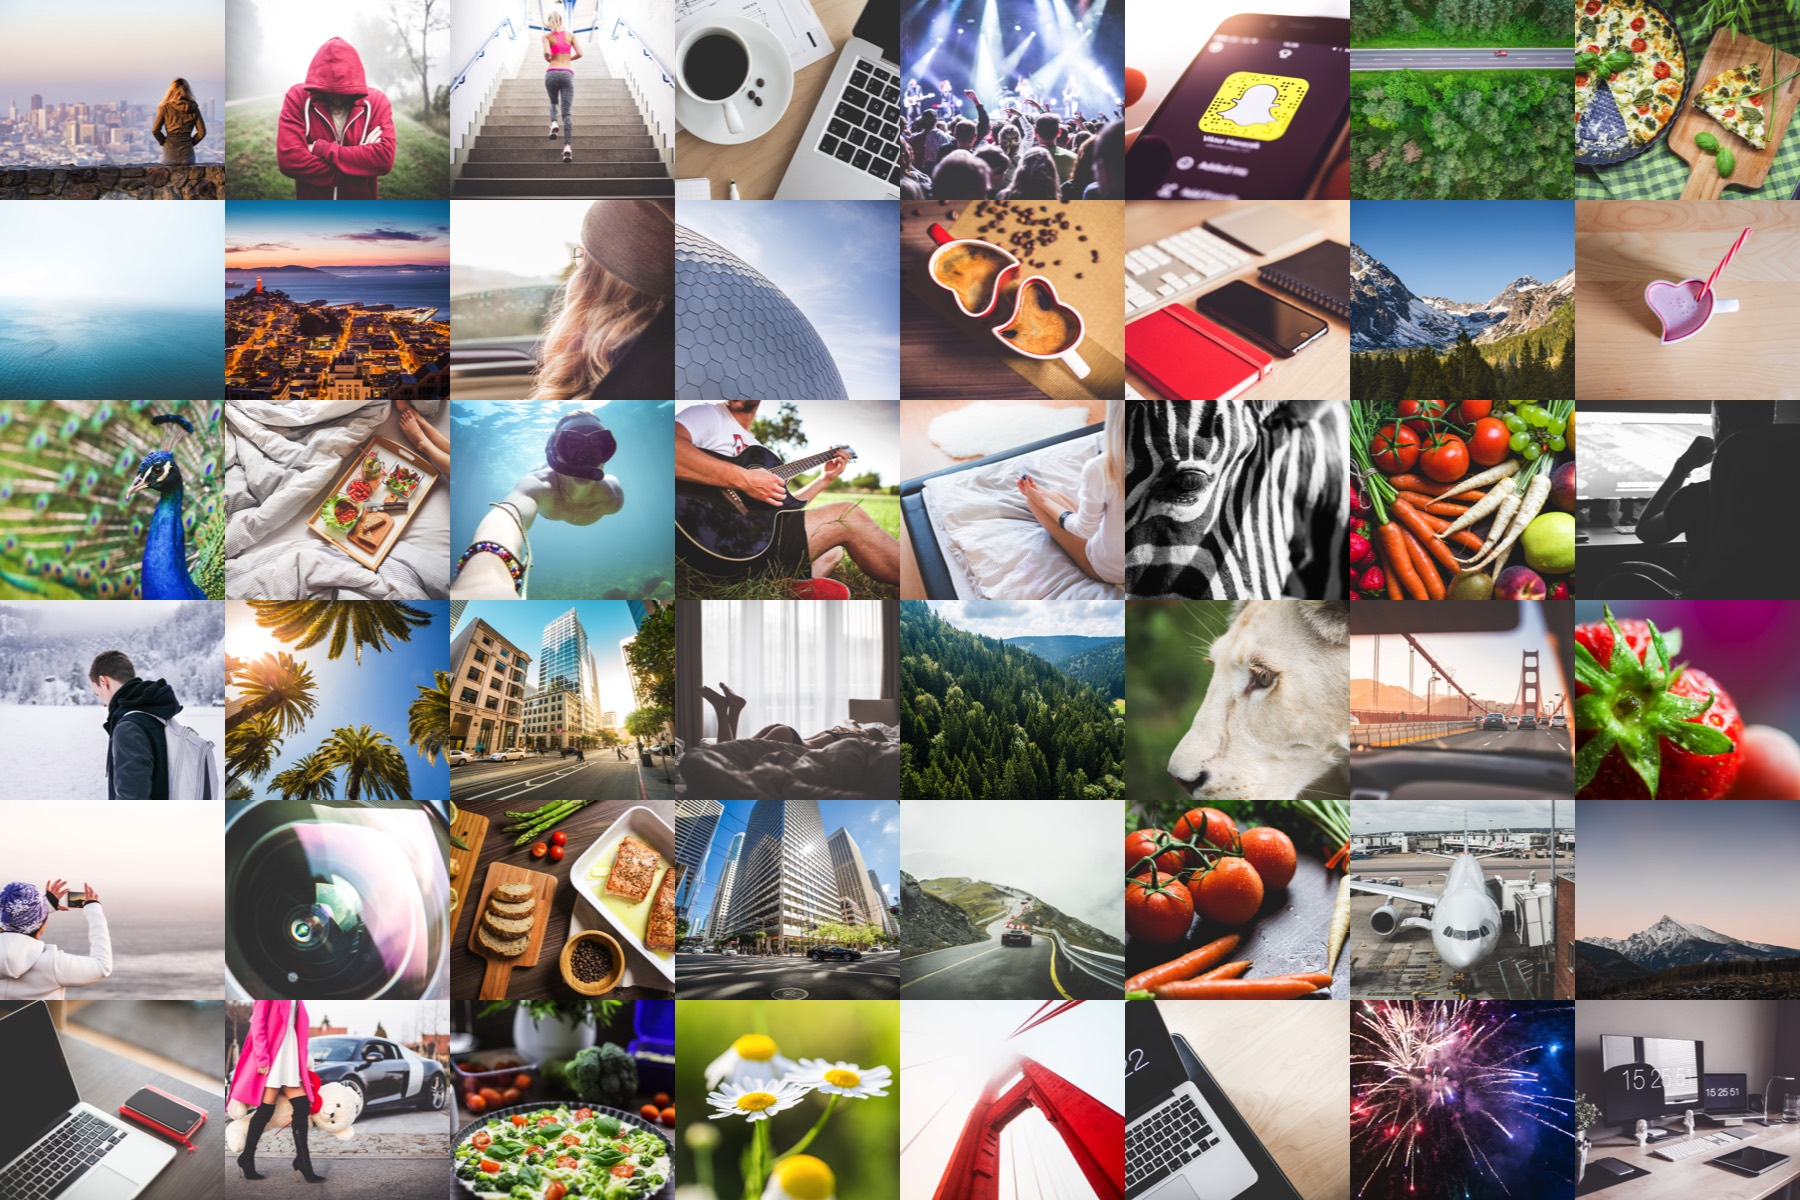 It's back again! Download updated All in One Pack with all FREE picjumbo photos — picjumbo BLOG